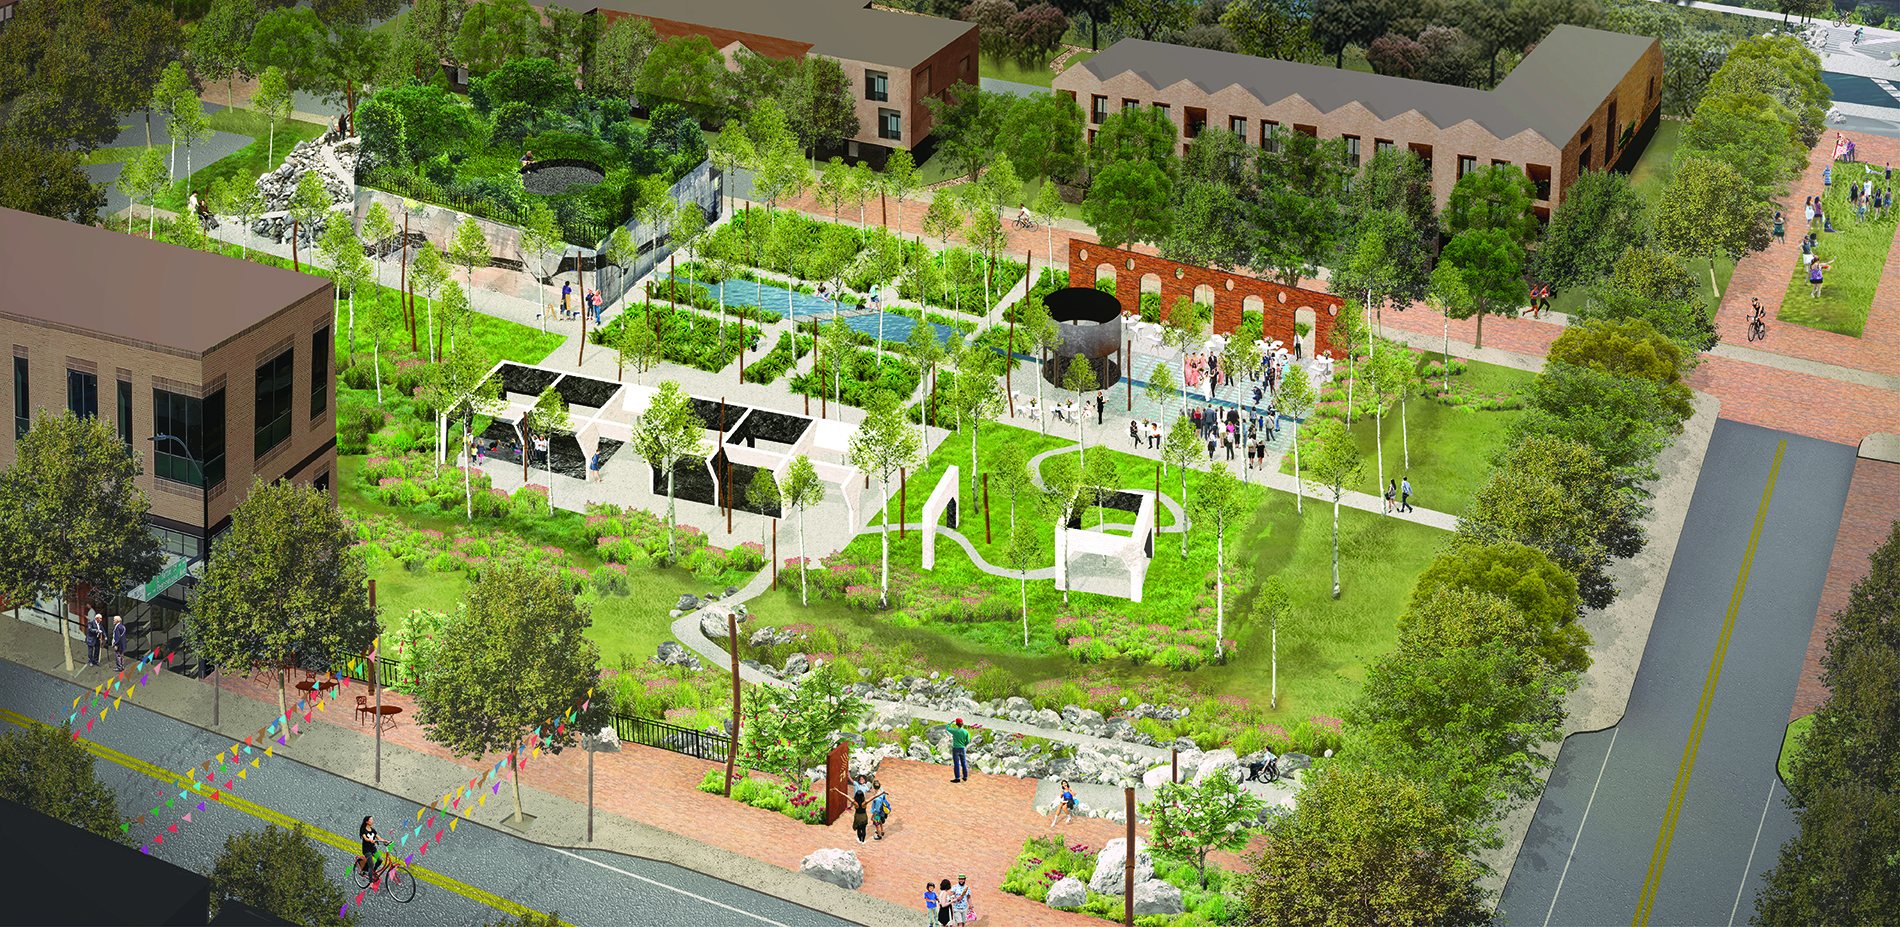 Anthracite Garden + Mixed Use Development: Connecting Town and Trail